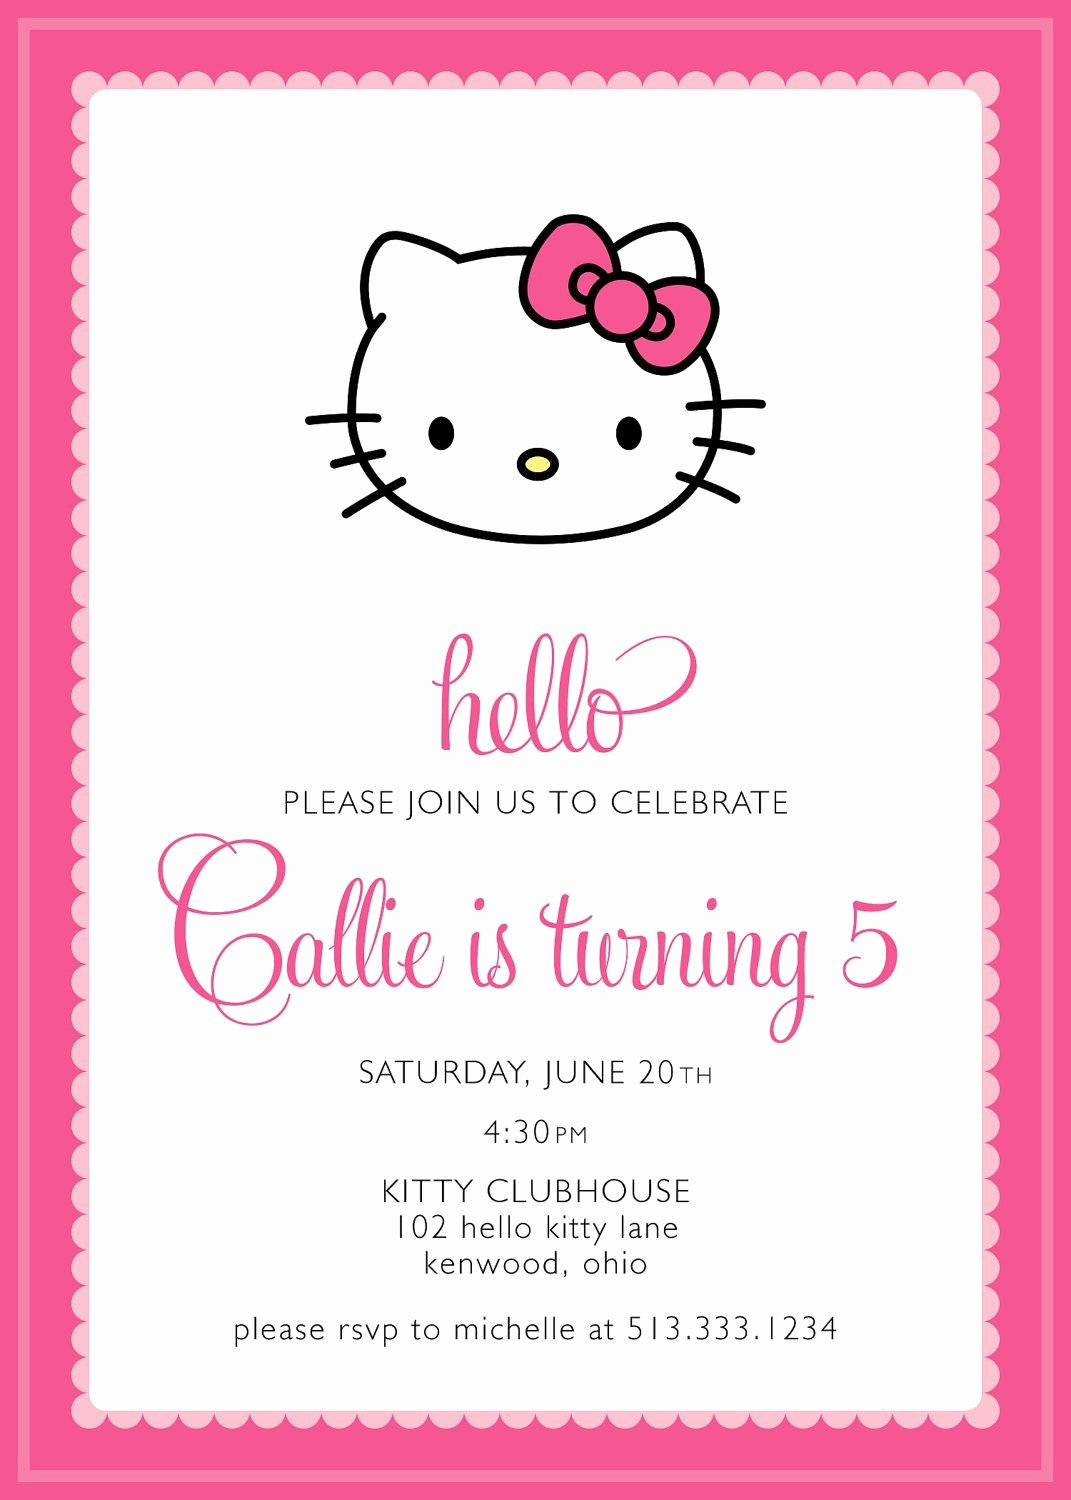 Printable Hello Kitty Invitations Unique Hello Kitty Party Invitation Custom $15 00 Via Etsy Alivias Birthday Ideas